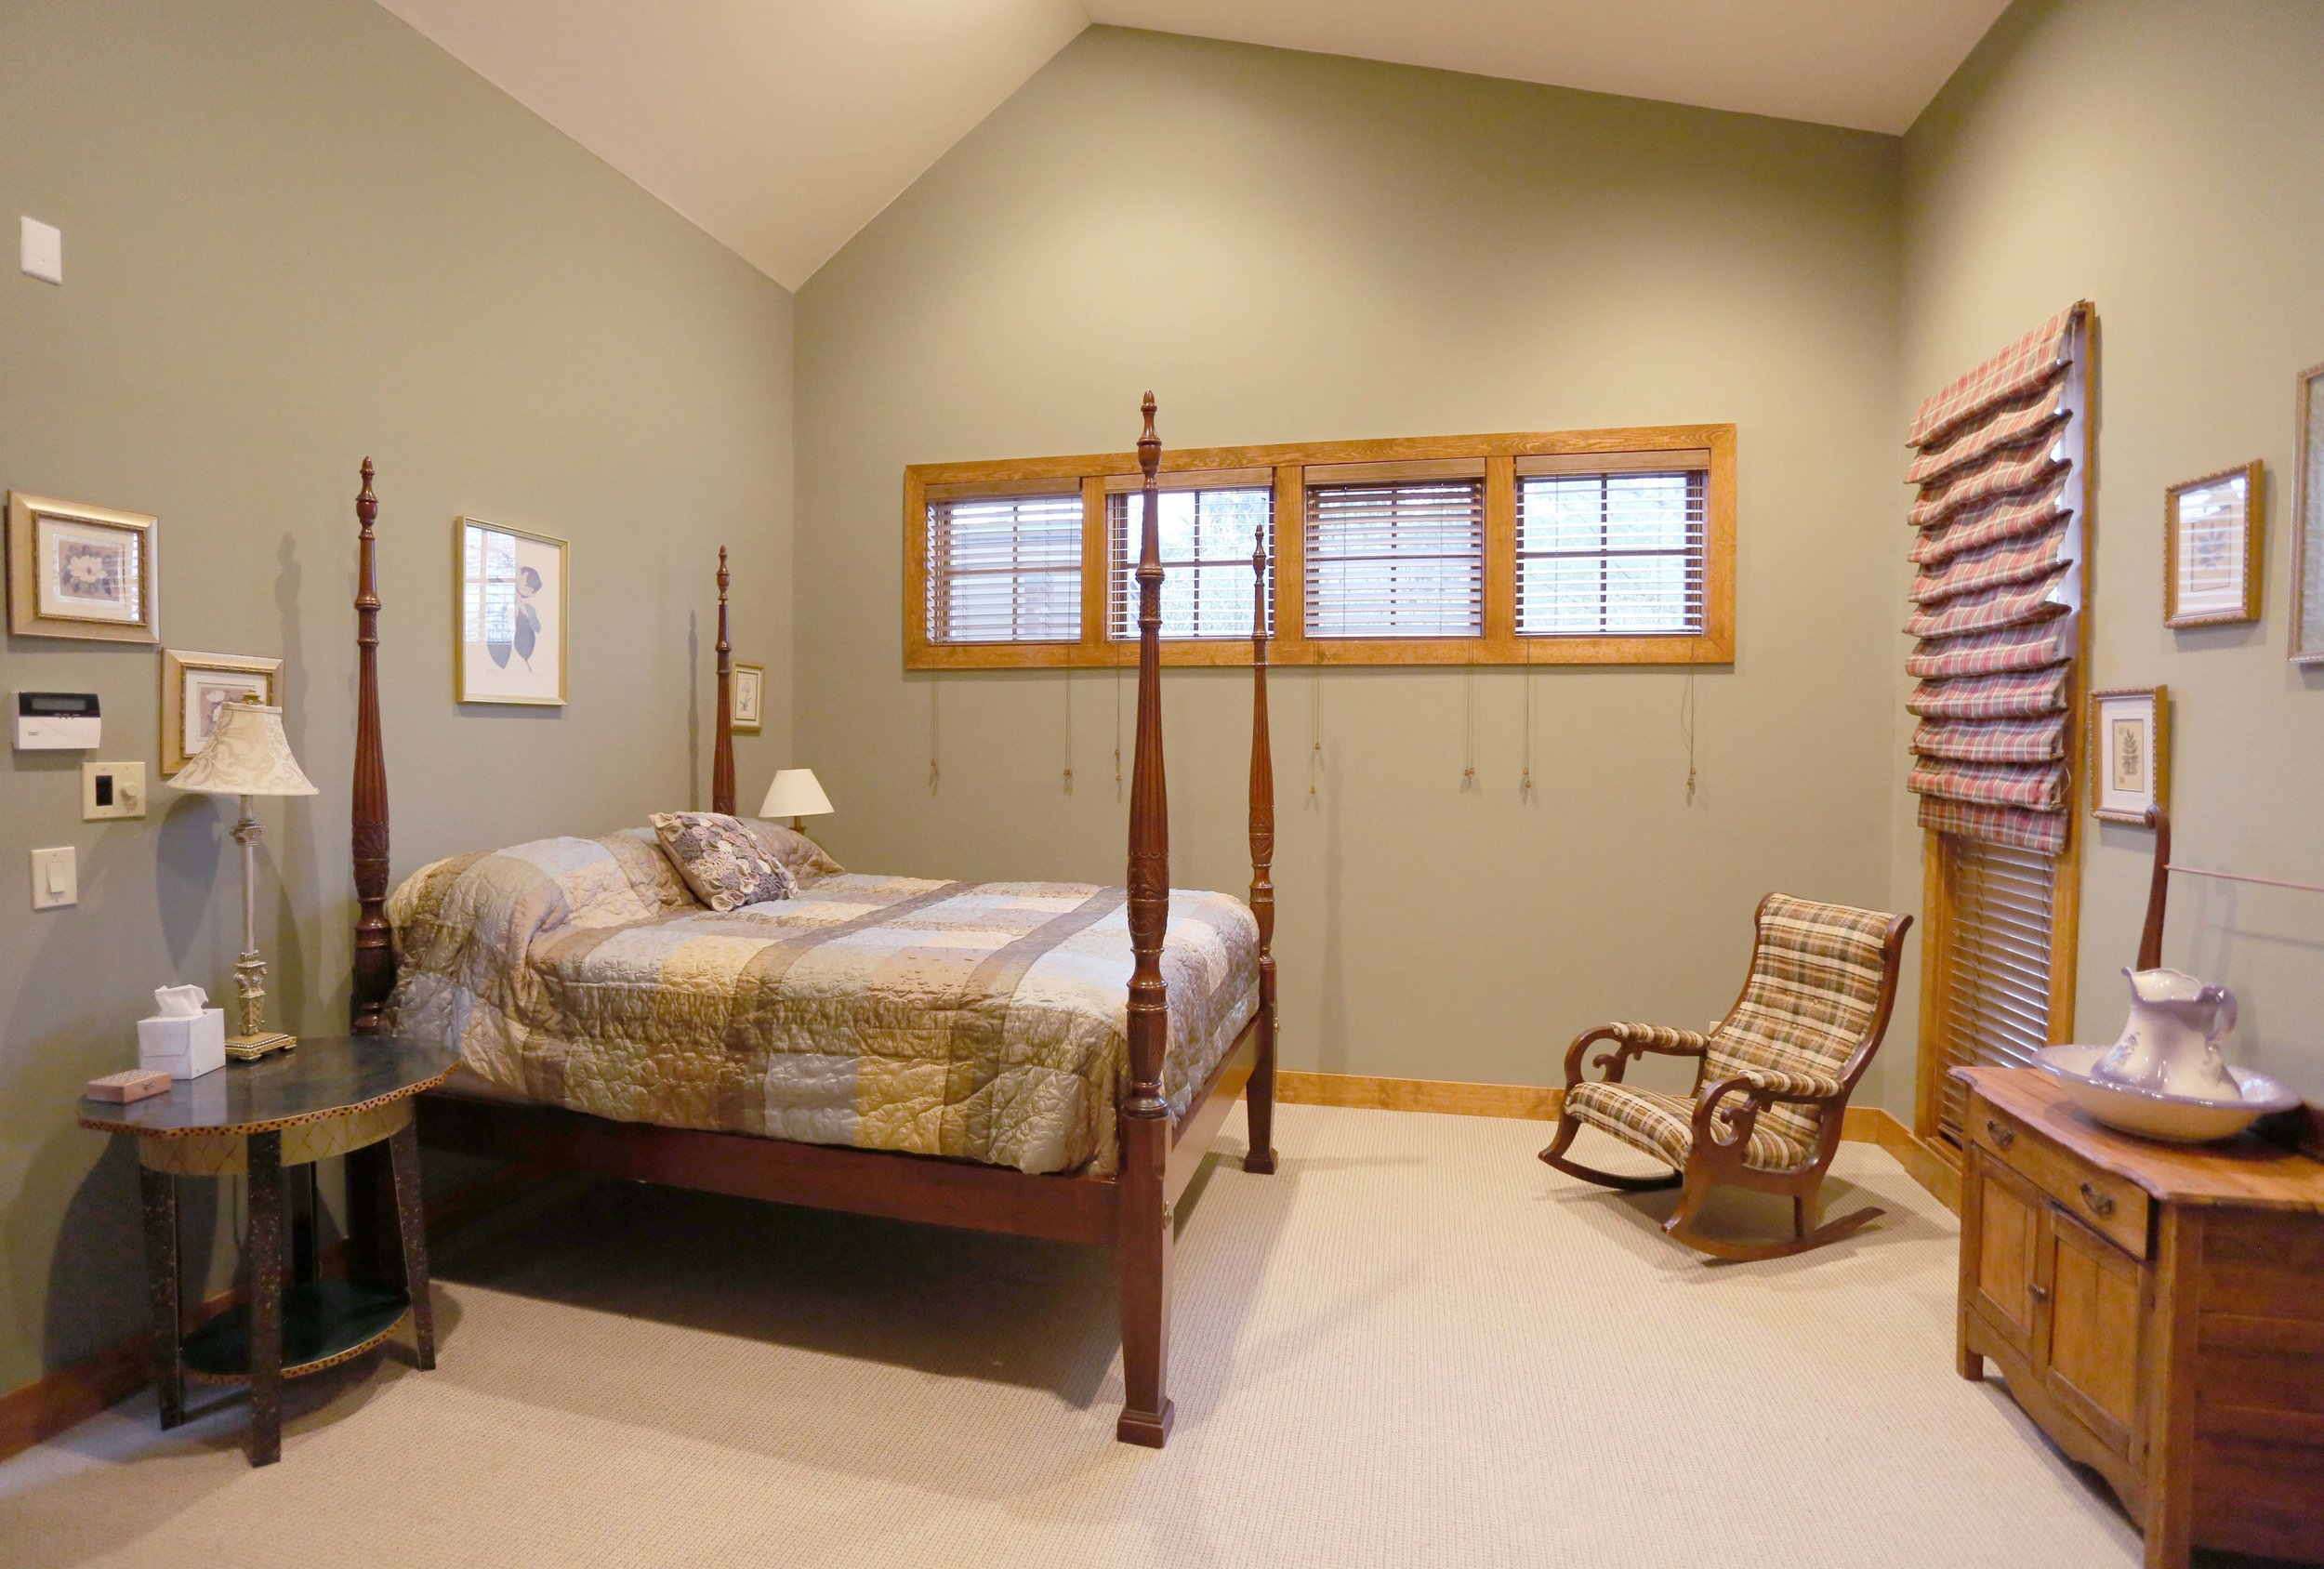 The Circle Lodge Master Bedroom has a Queen bed and private full bathroom with jacuzzi. $190/weekdays.